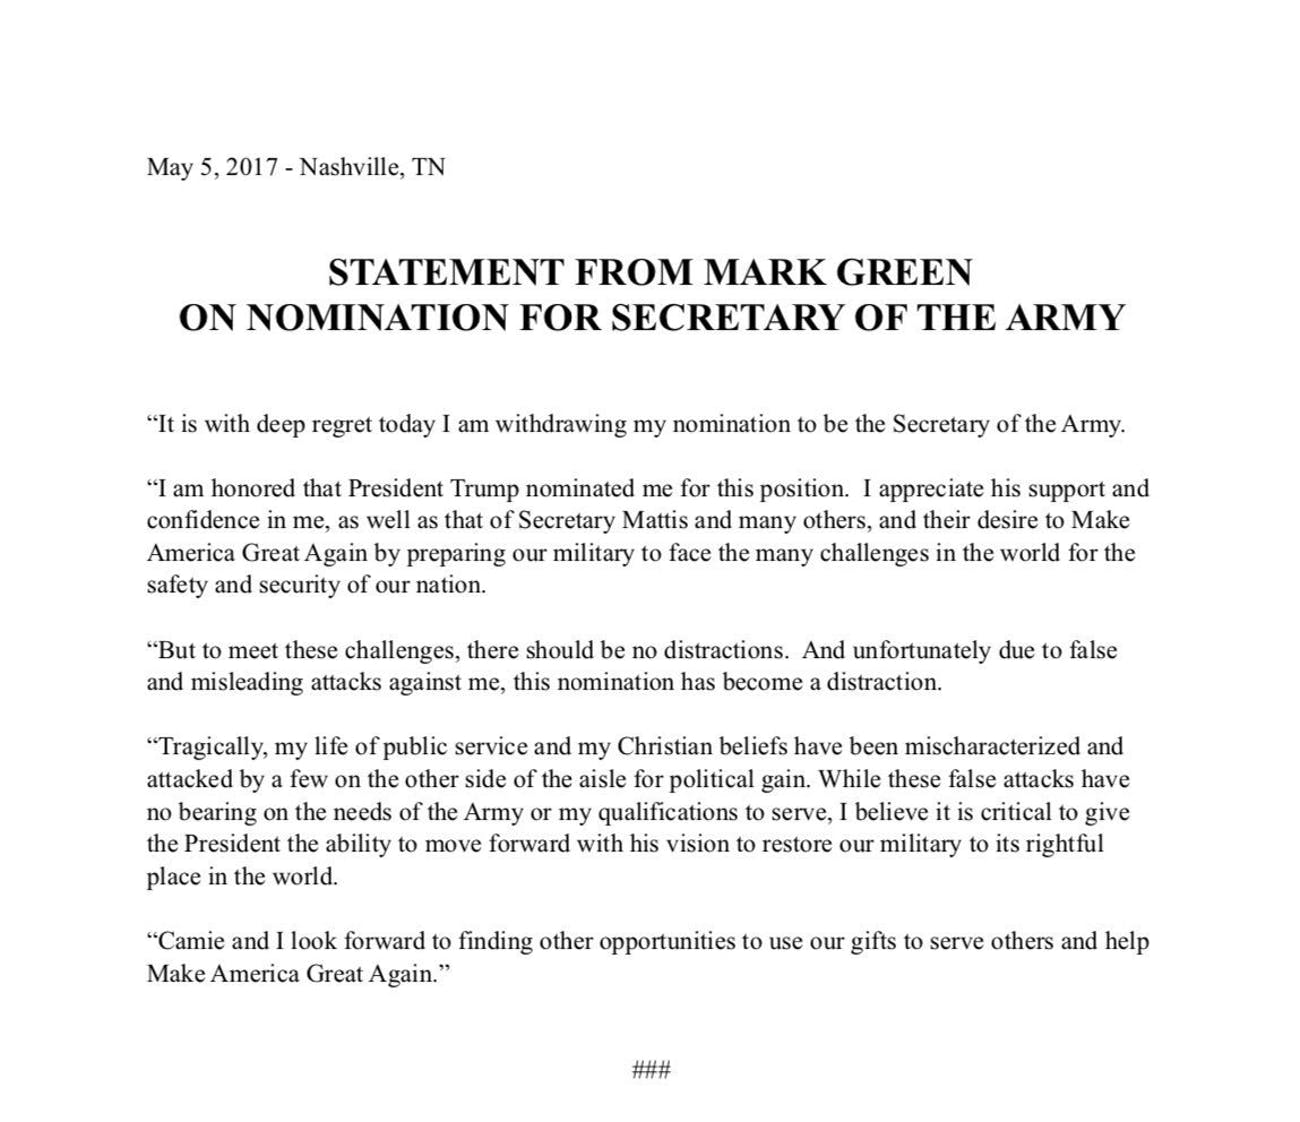 Mark Green's statement withdrawing himself from the nomination for Army Secretary.